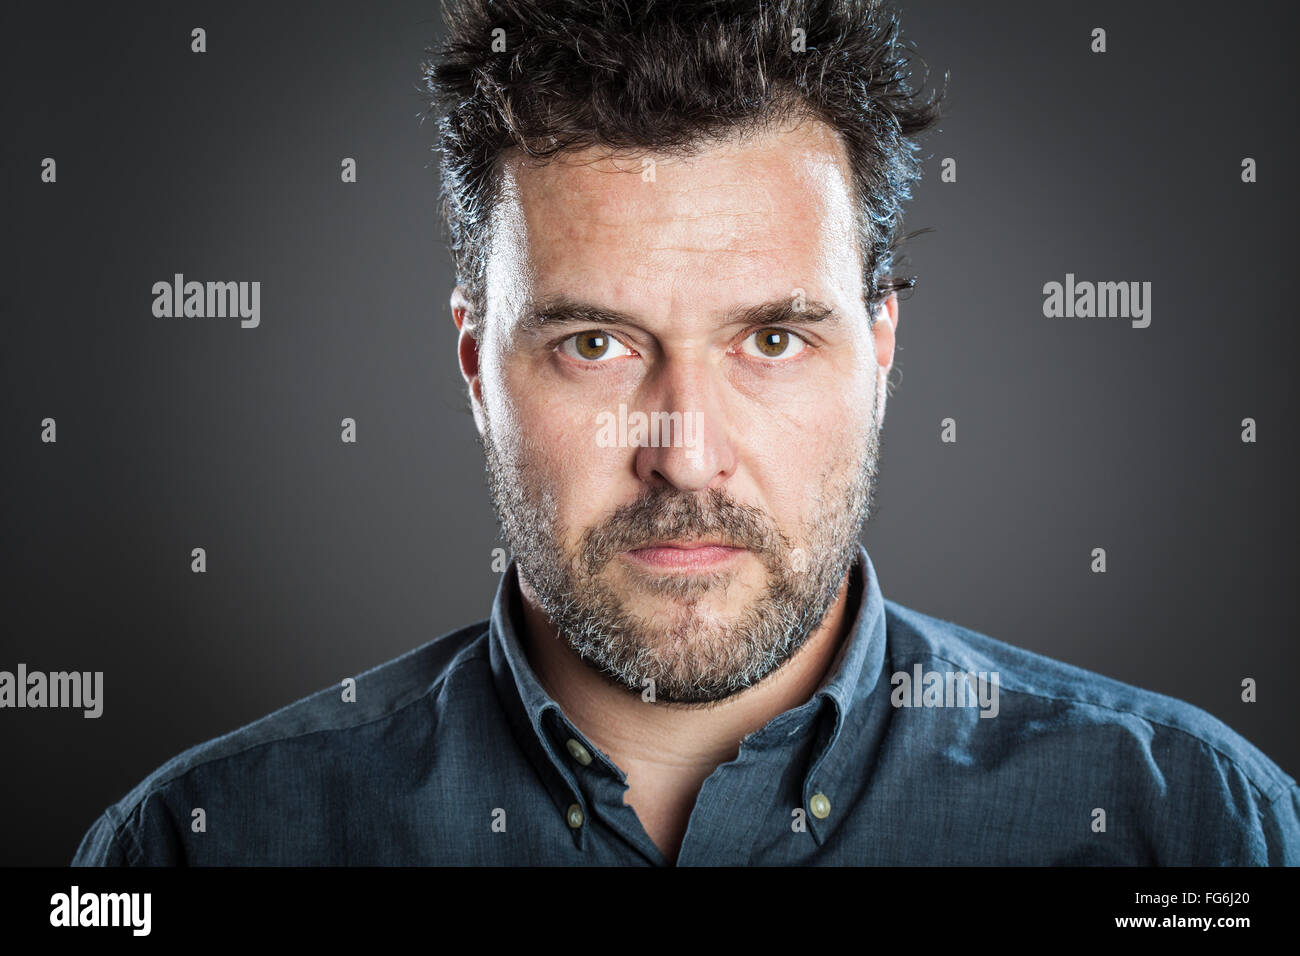 Portrait of Serious Man Standing Against Gray Background Photo Stock